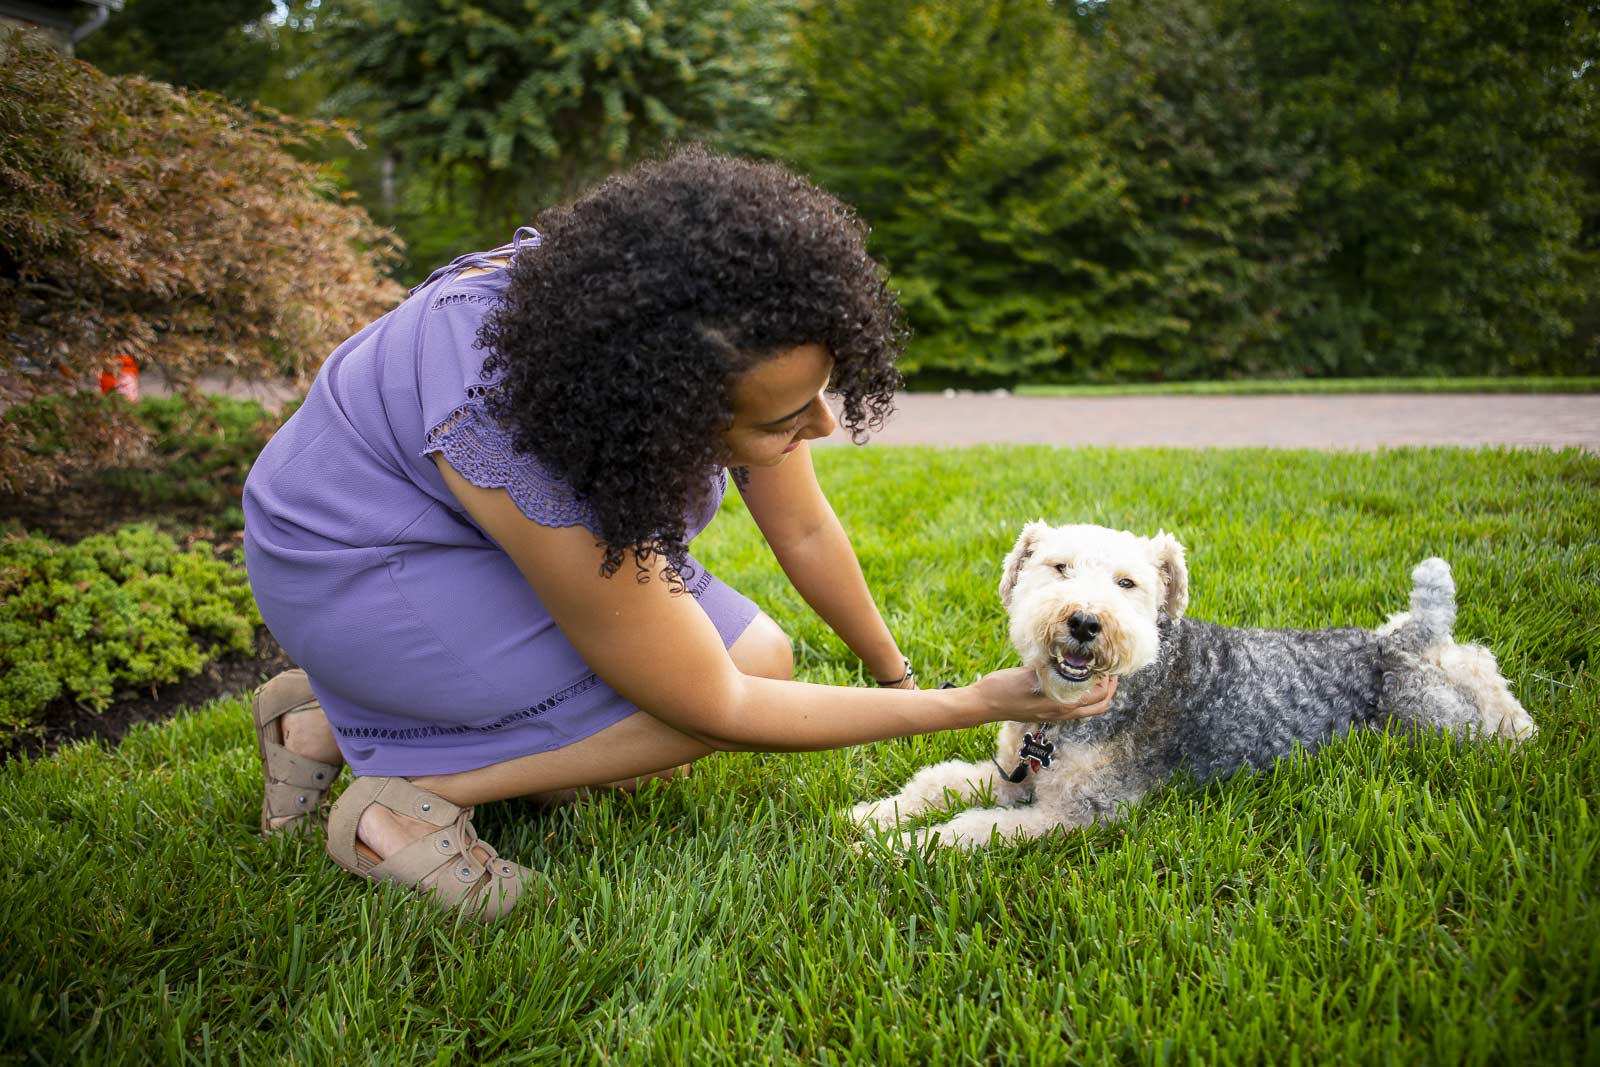 dog in lawn with flea and tick control